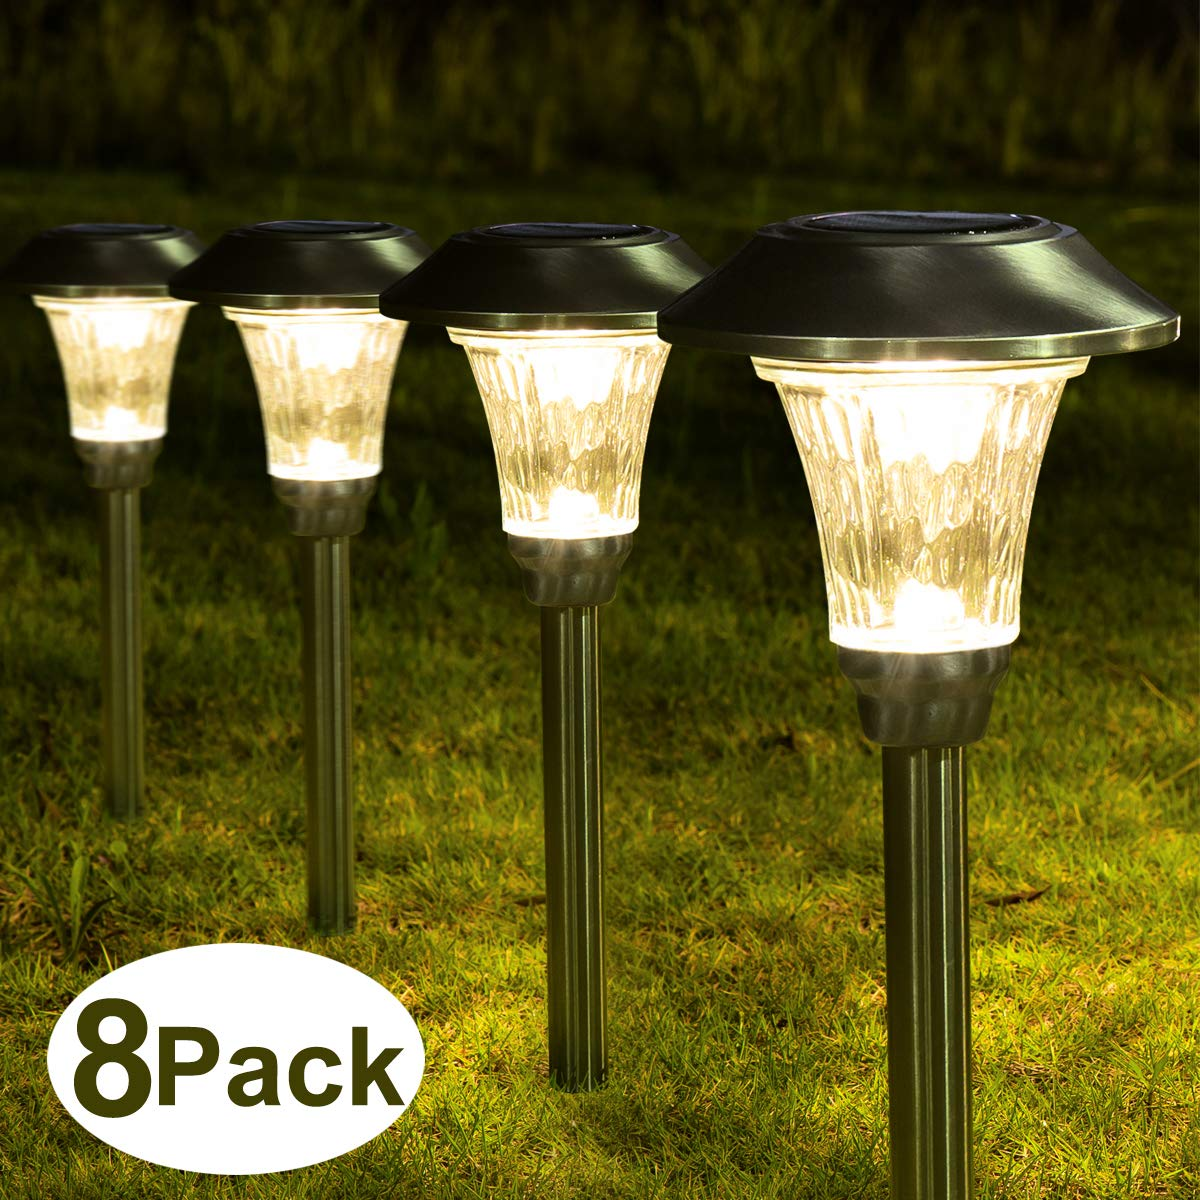 Solpex 8 Pack Solar Path Lights Outdoor, Waterproof Glass Stainless Steel High Lumen Automatic Solar Pathway Lights for Patio, Yard, Lawn, Garden and Landscape-Warm White(Silver Finish) by Solpex